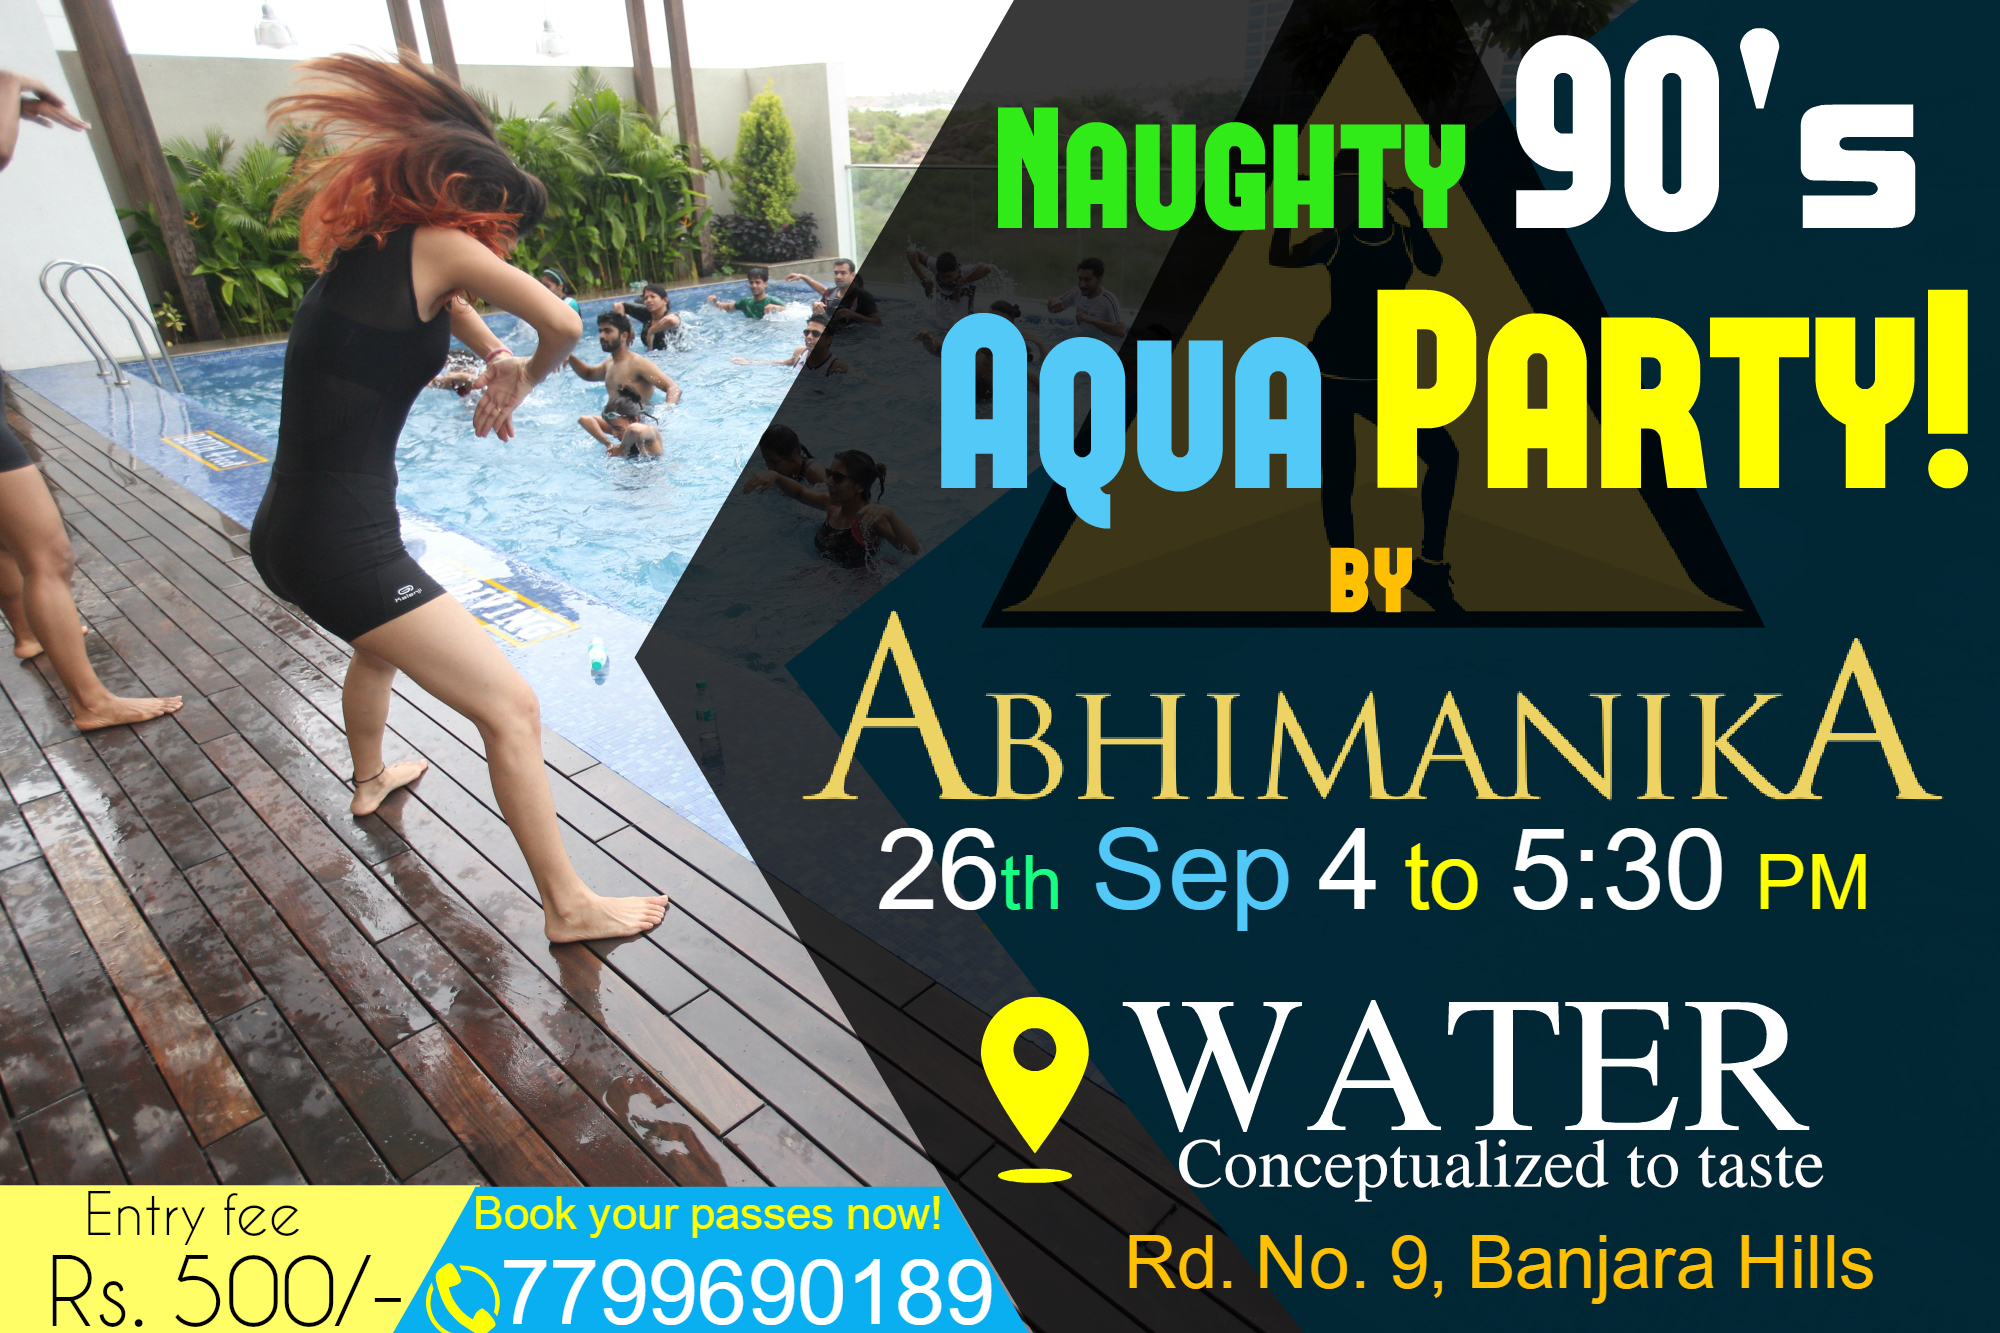 Naughty 90s Aqua Dance Party With Abhimanika